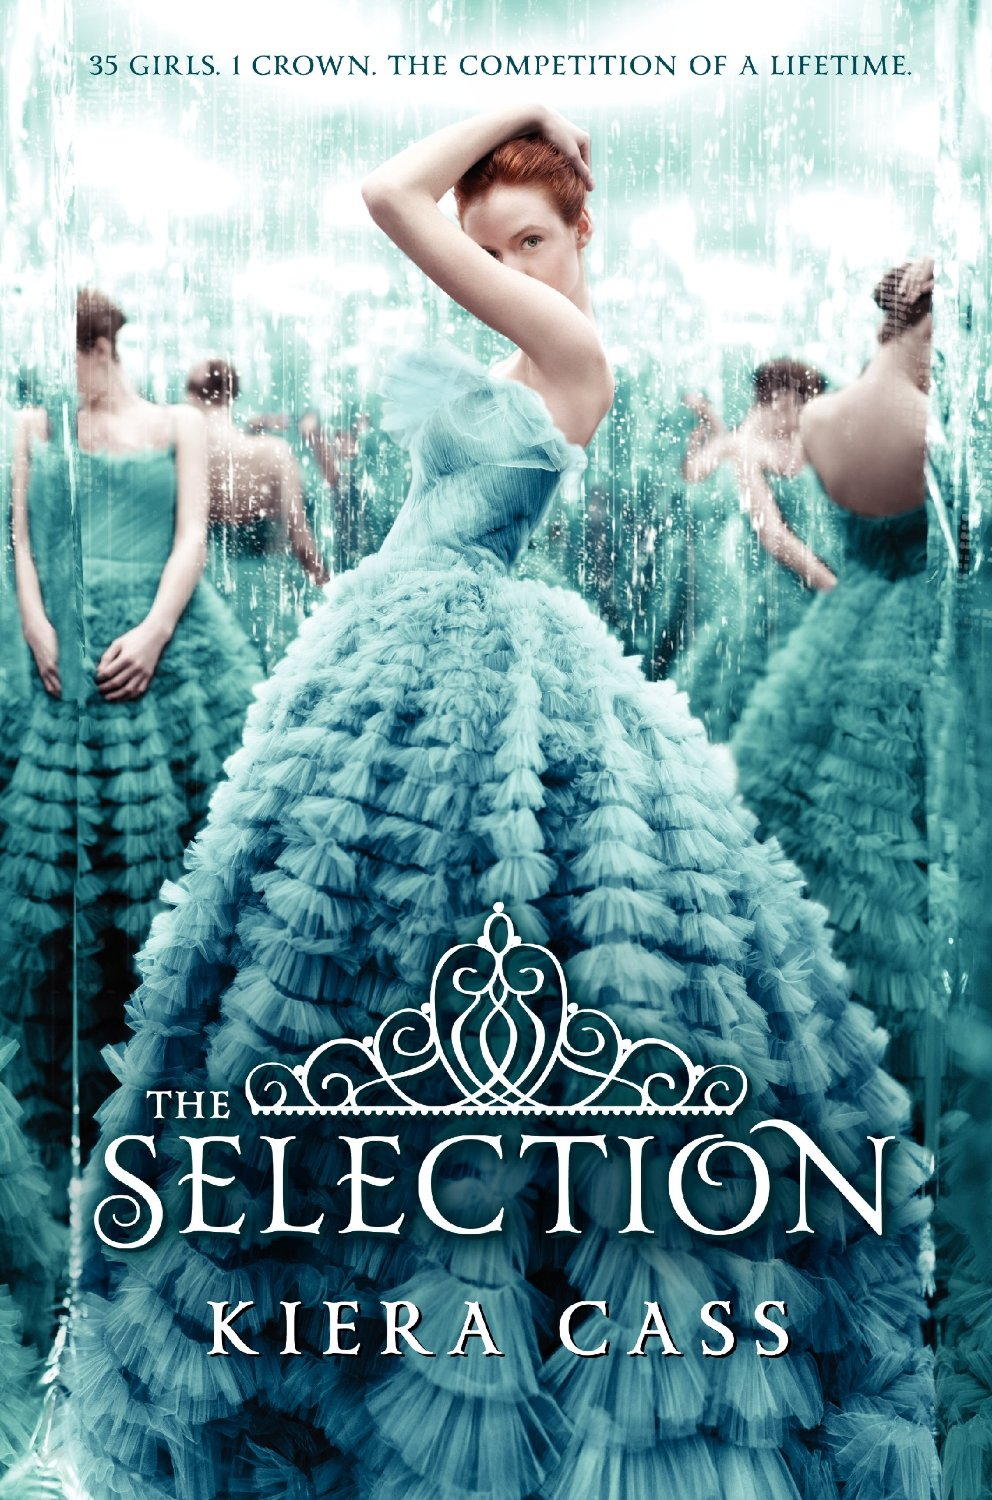 THE SELECTION by Kiera Cass is a Landmark Young Adult Title on Book Country.